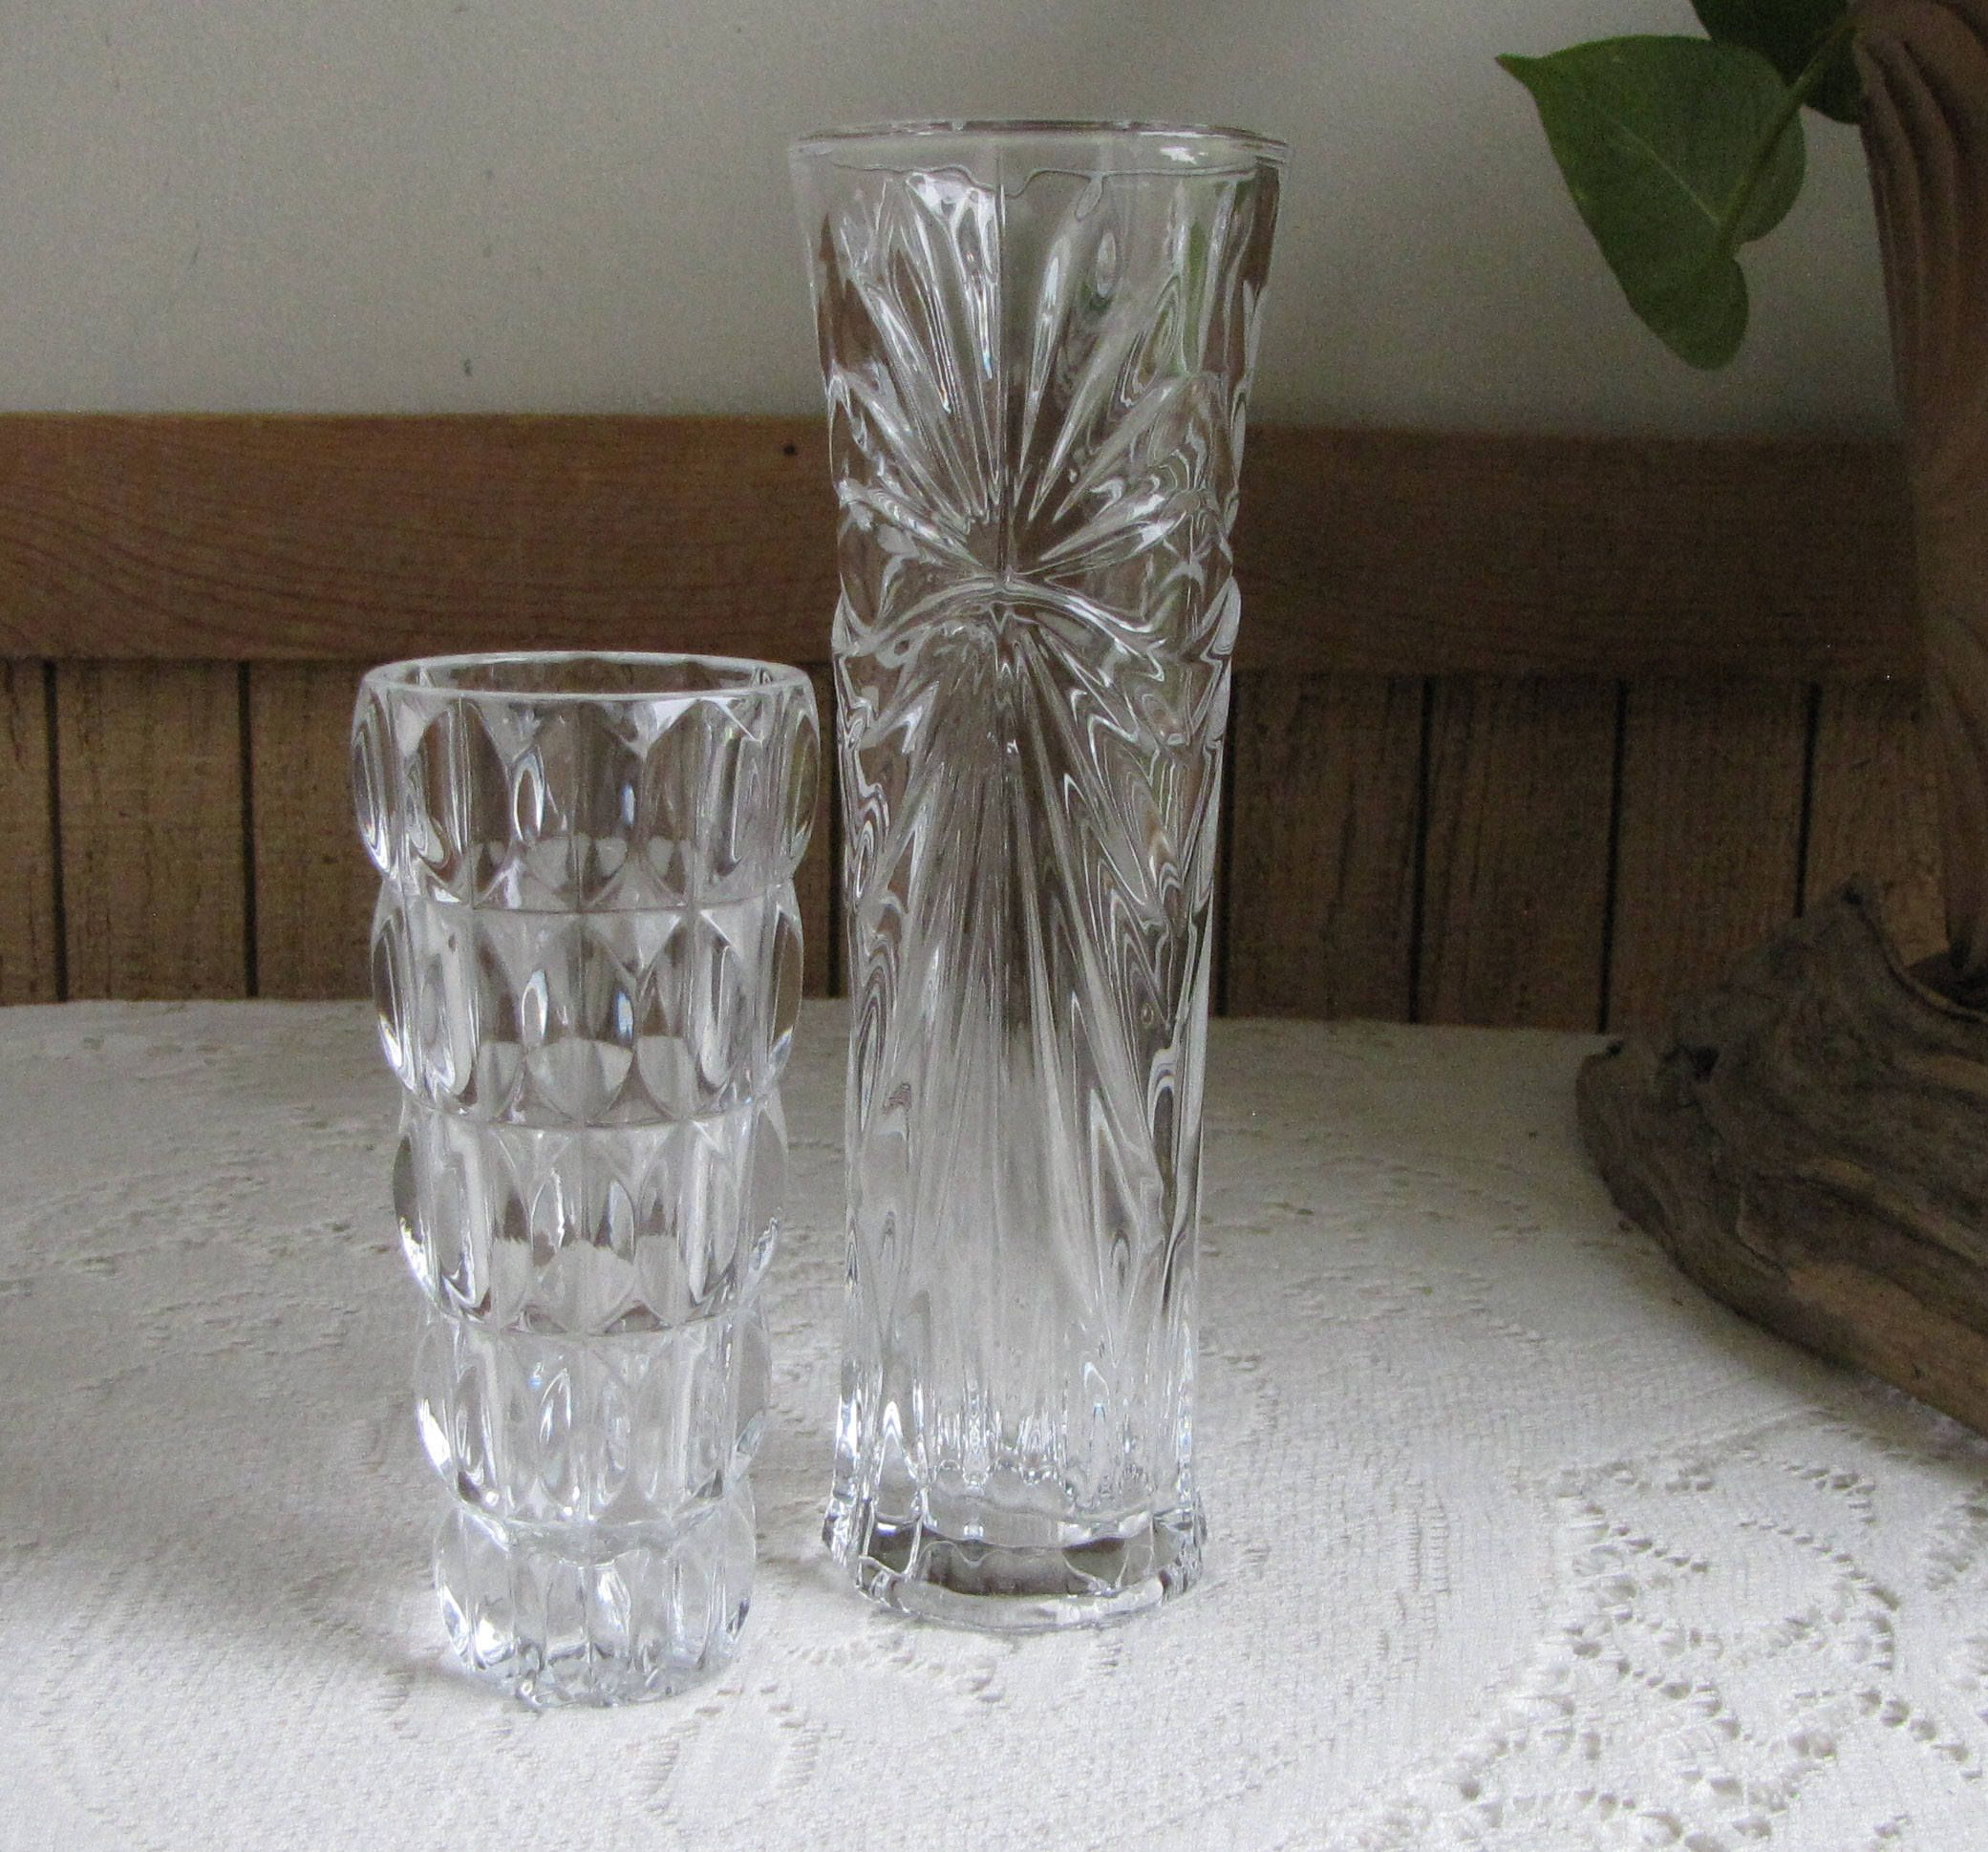 taxes erhlich to in garnered slim bud glassware import days crystal duties applicable styled vase included ships cosmos shop swedish and cylinder simple the where product thin flower deborah are ehrlich